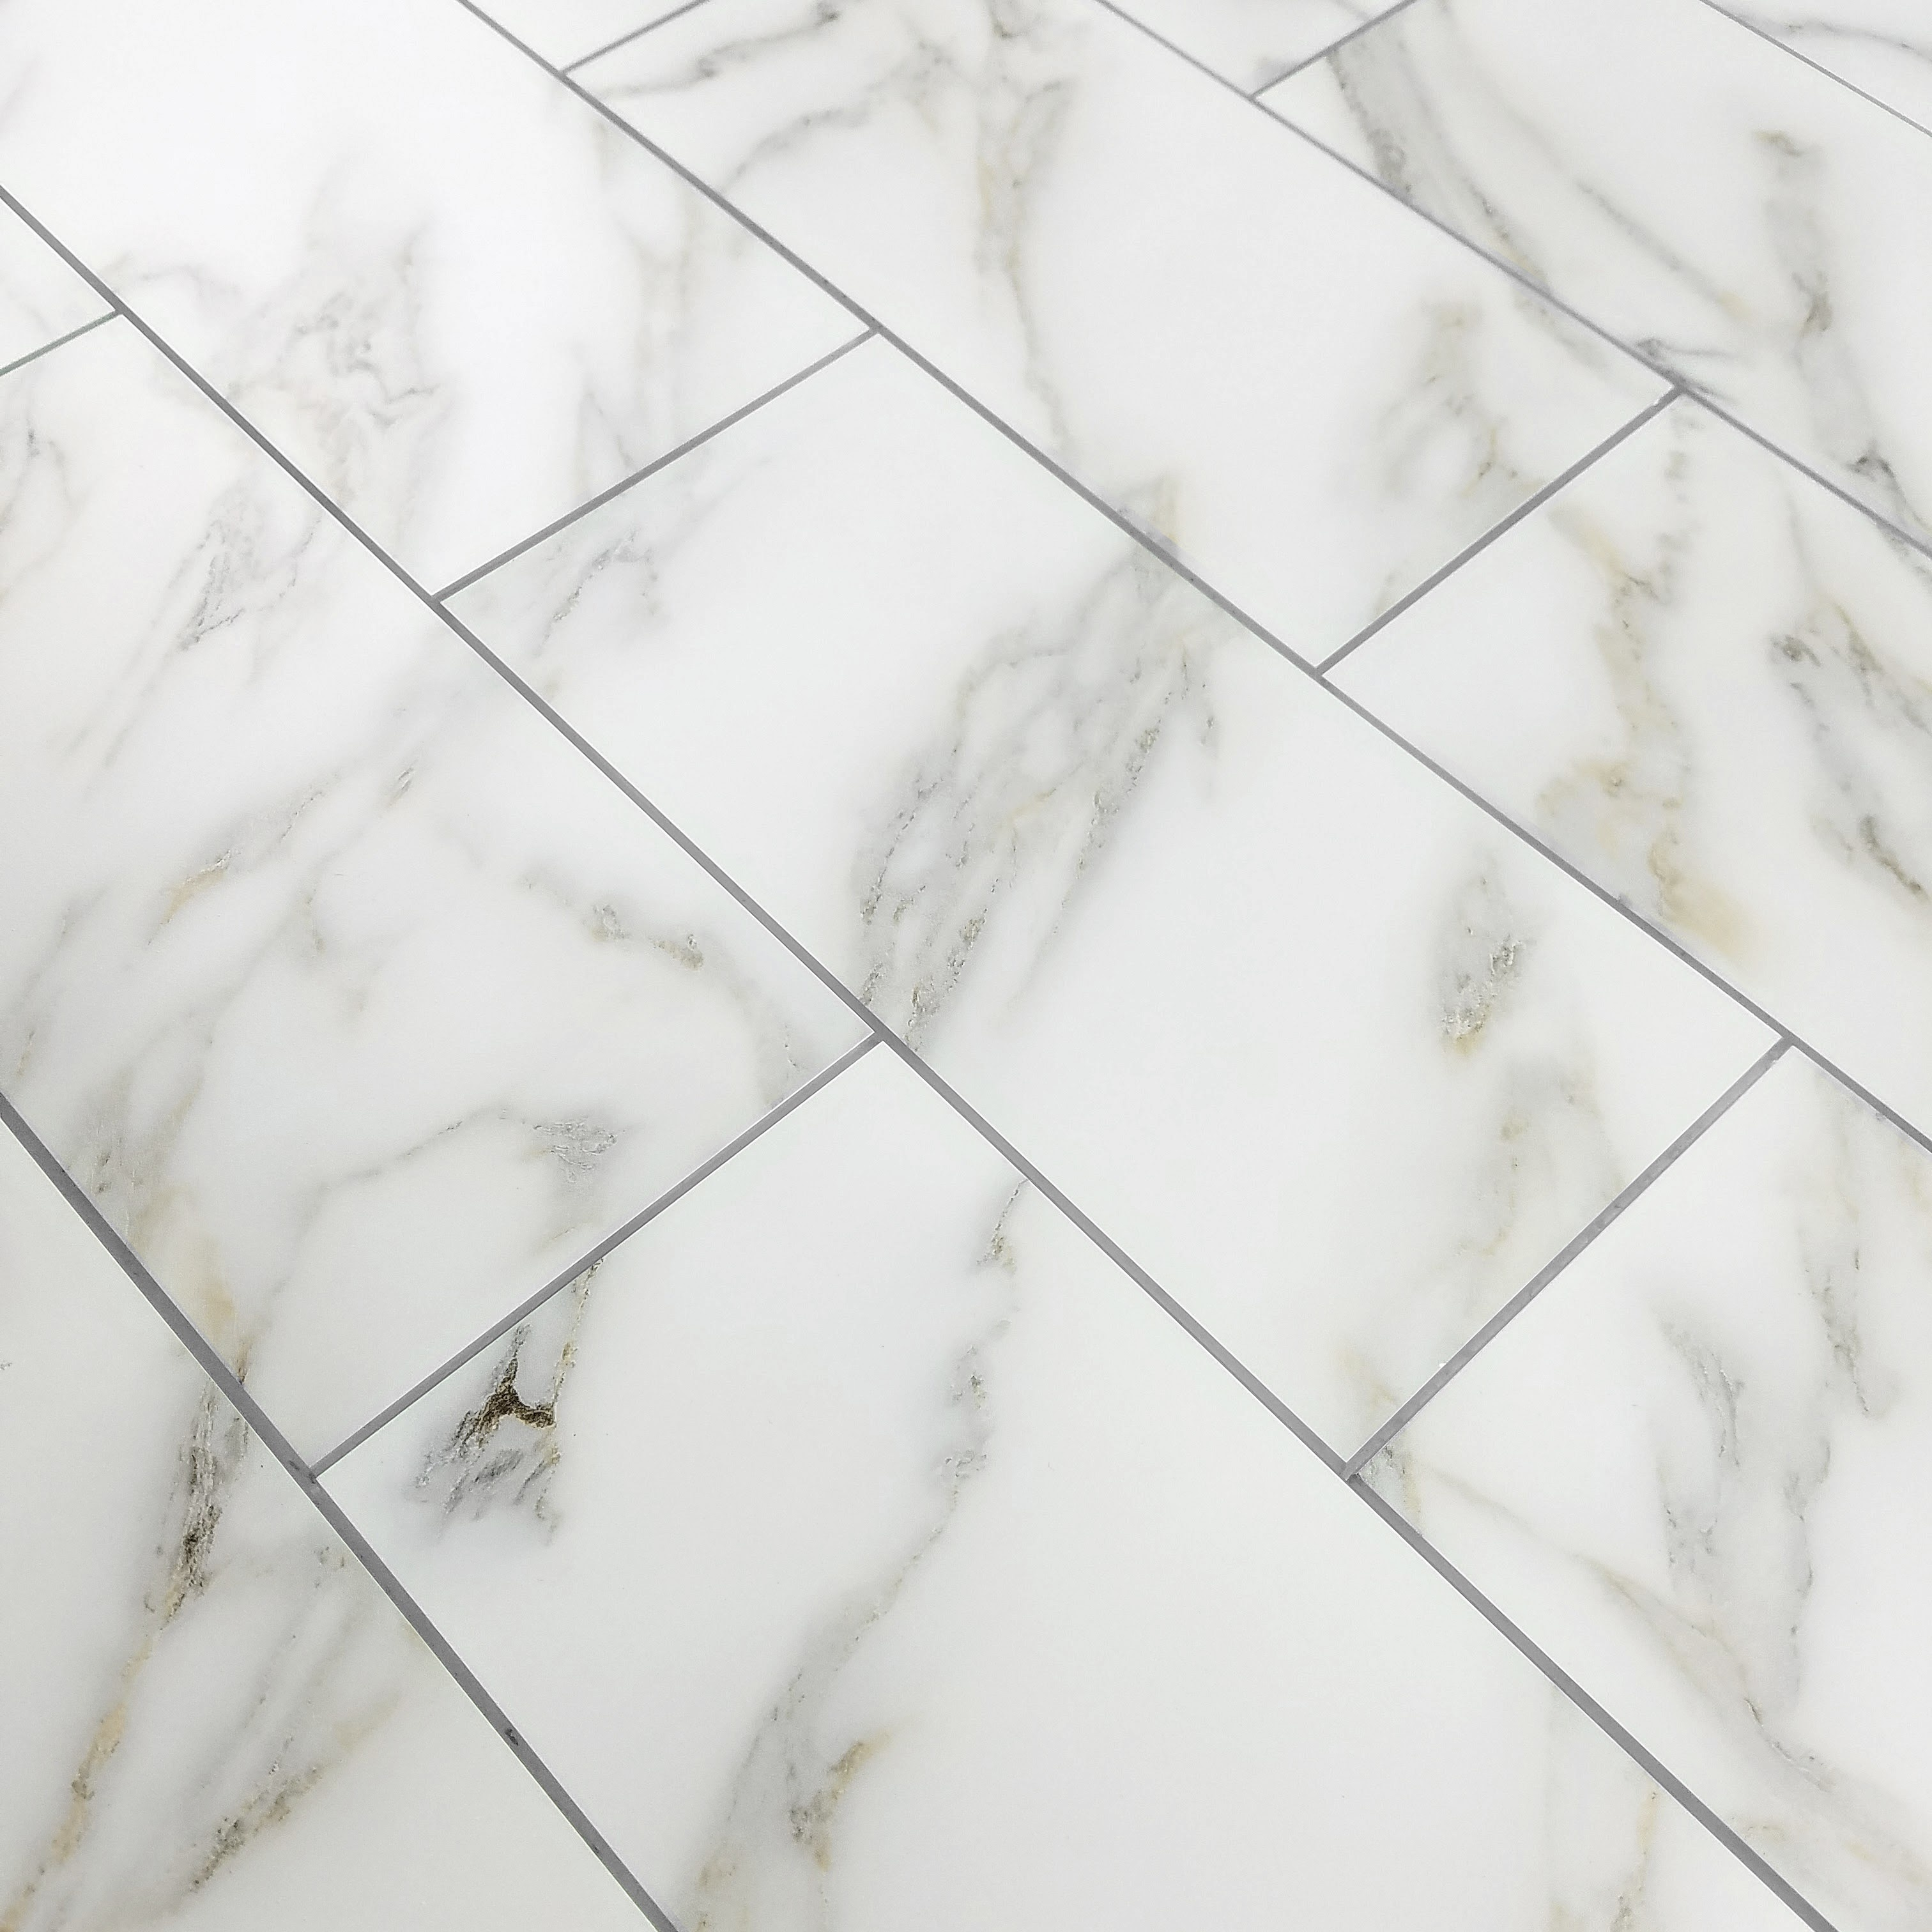 Nature 8 X 16 Gl Marble Look Tile In Calacatta Gold Is Available For Purchase Increments Of 6